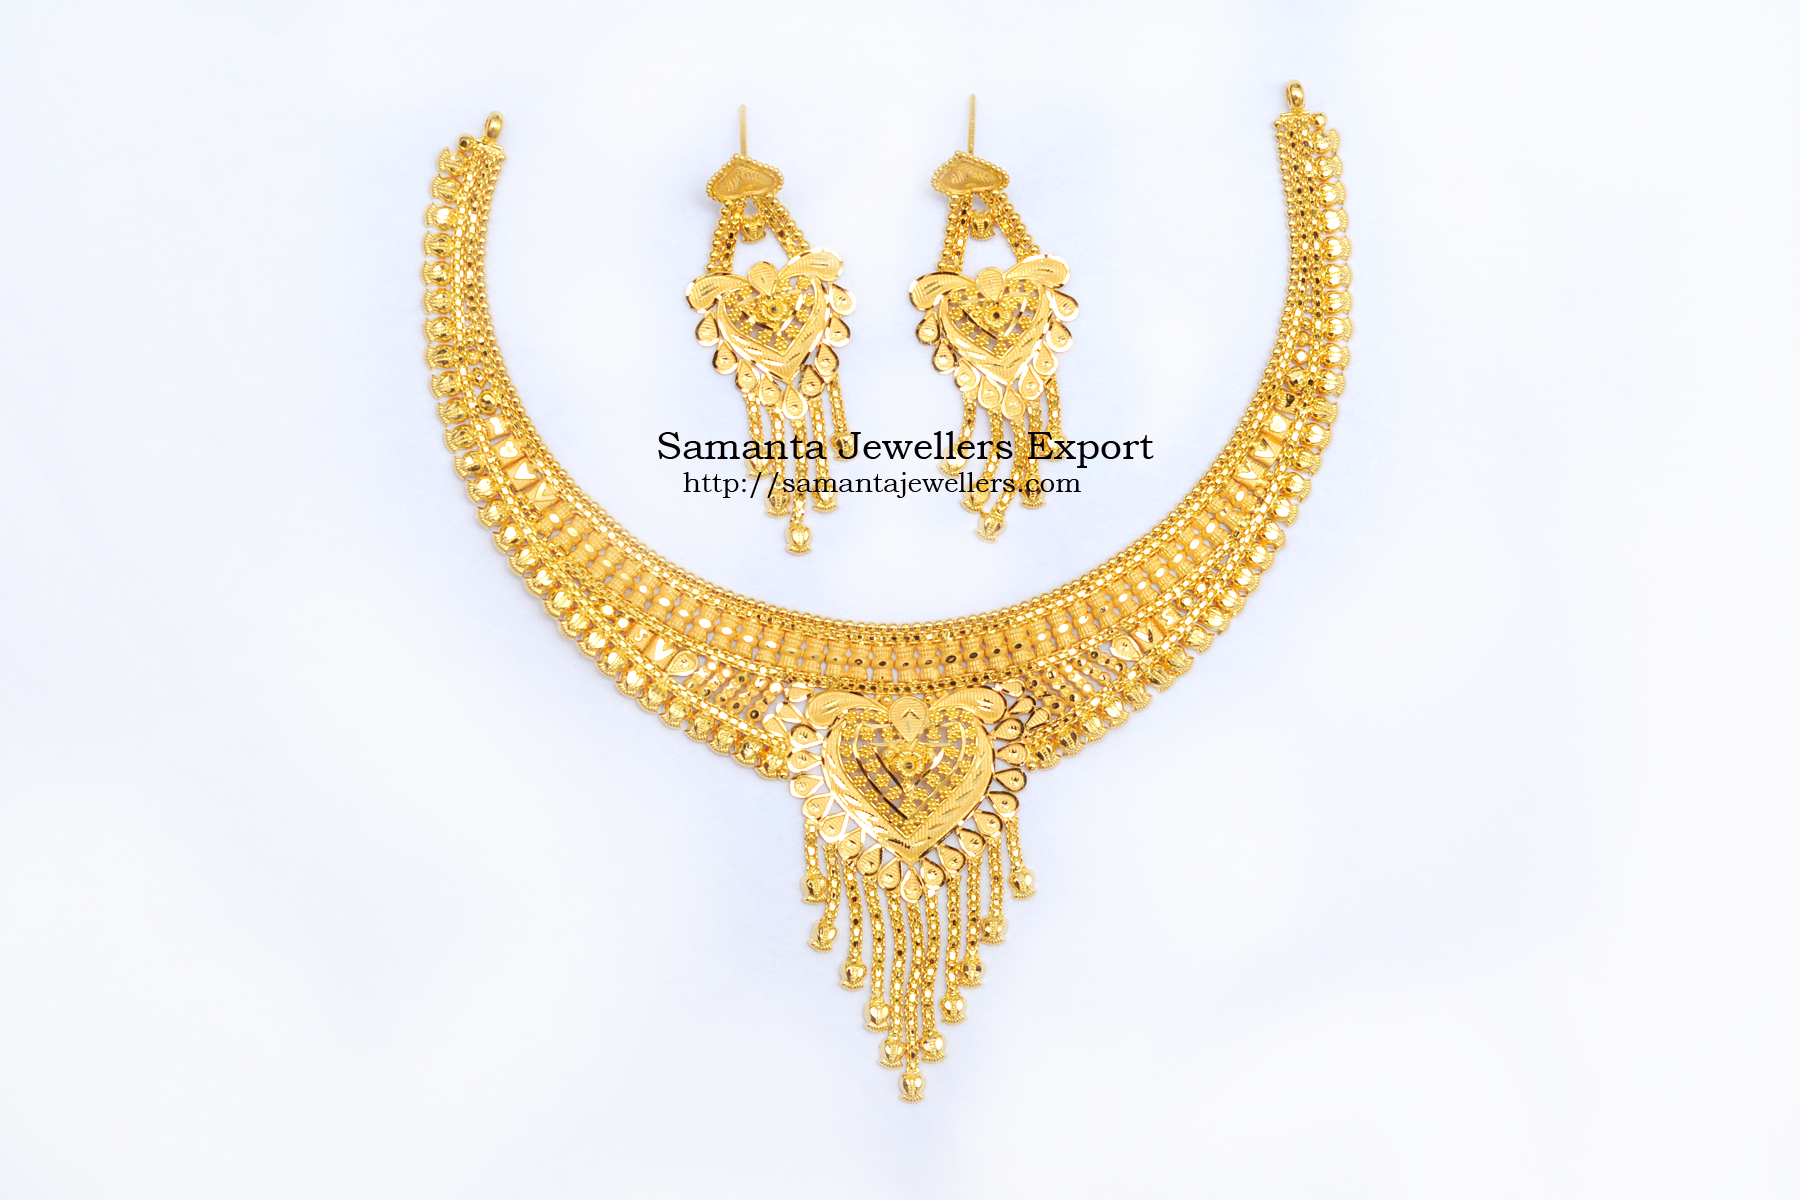 Latest Light Weight Gold Necklace Designs 2021 With Weight And Price | 22kt Wedding Necklace designs 22k Light Gold Trendy Wedding Necklace